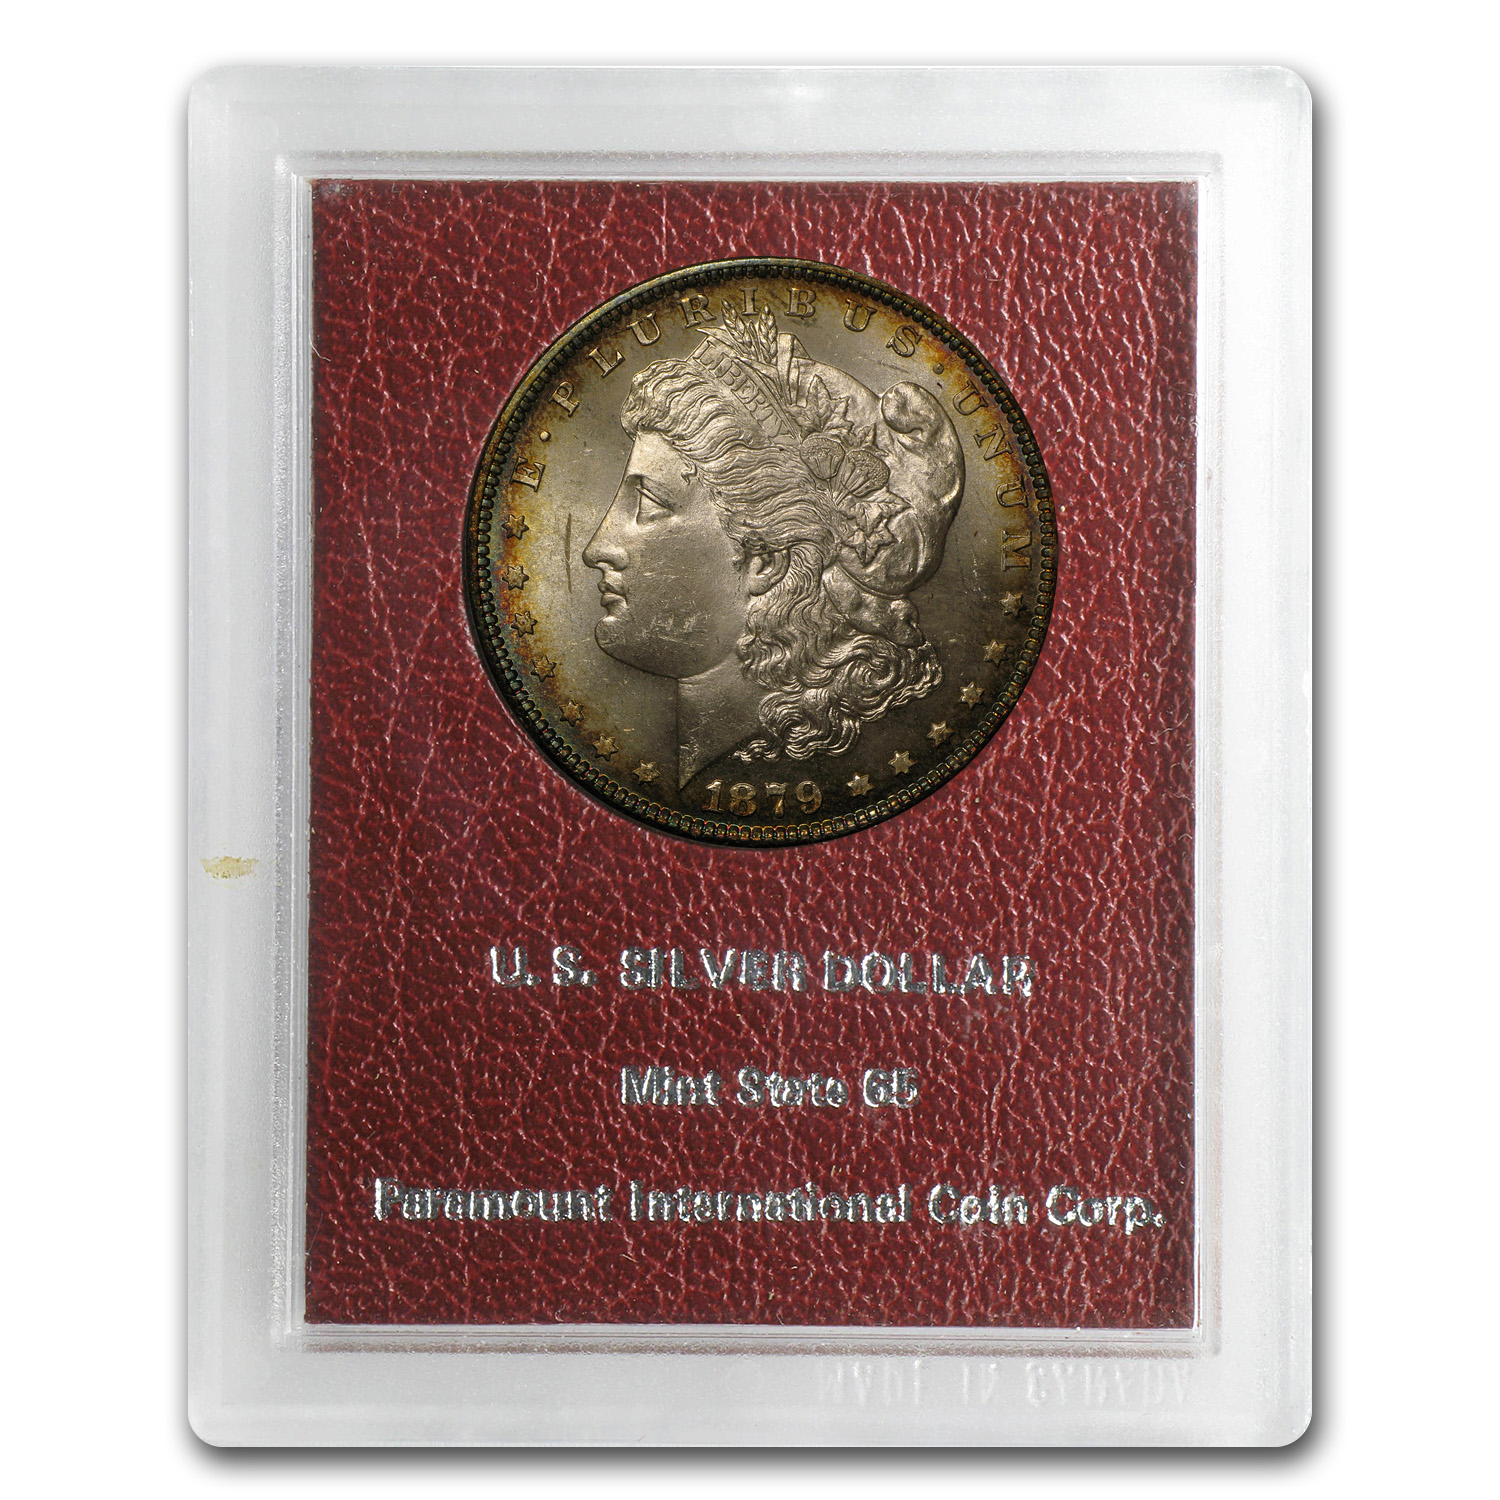 1879-S Morgan Dollar - MS-65 - Paramount International Coin Co.